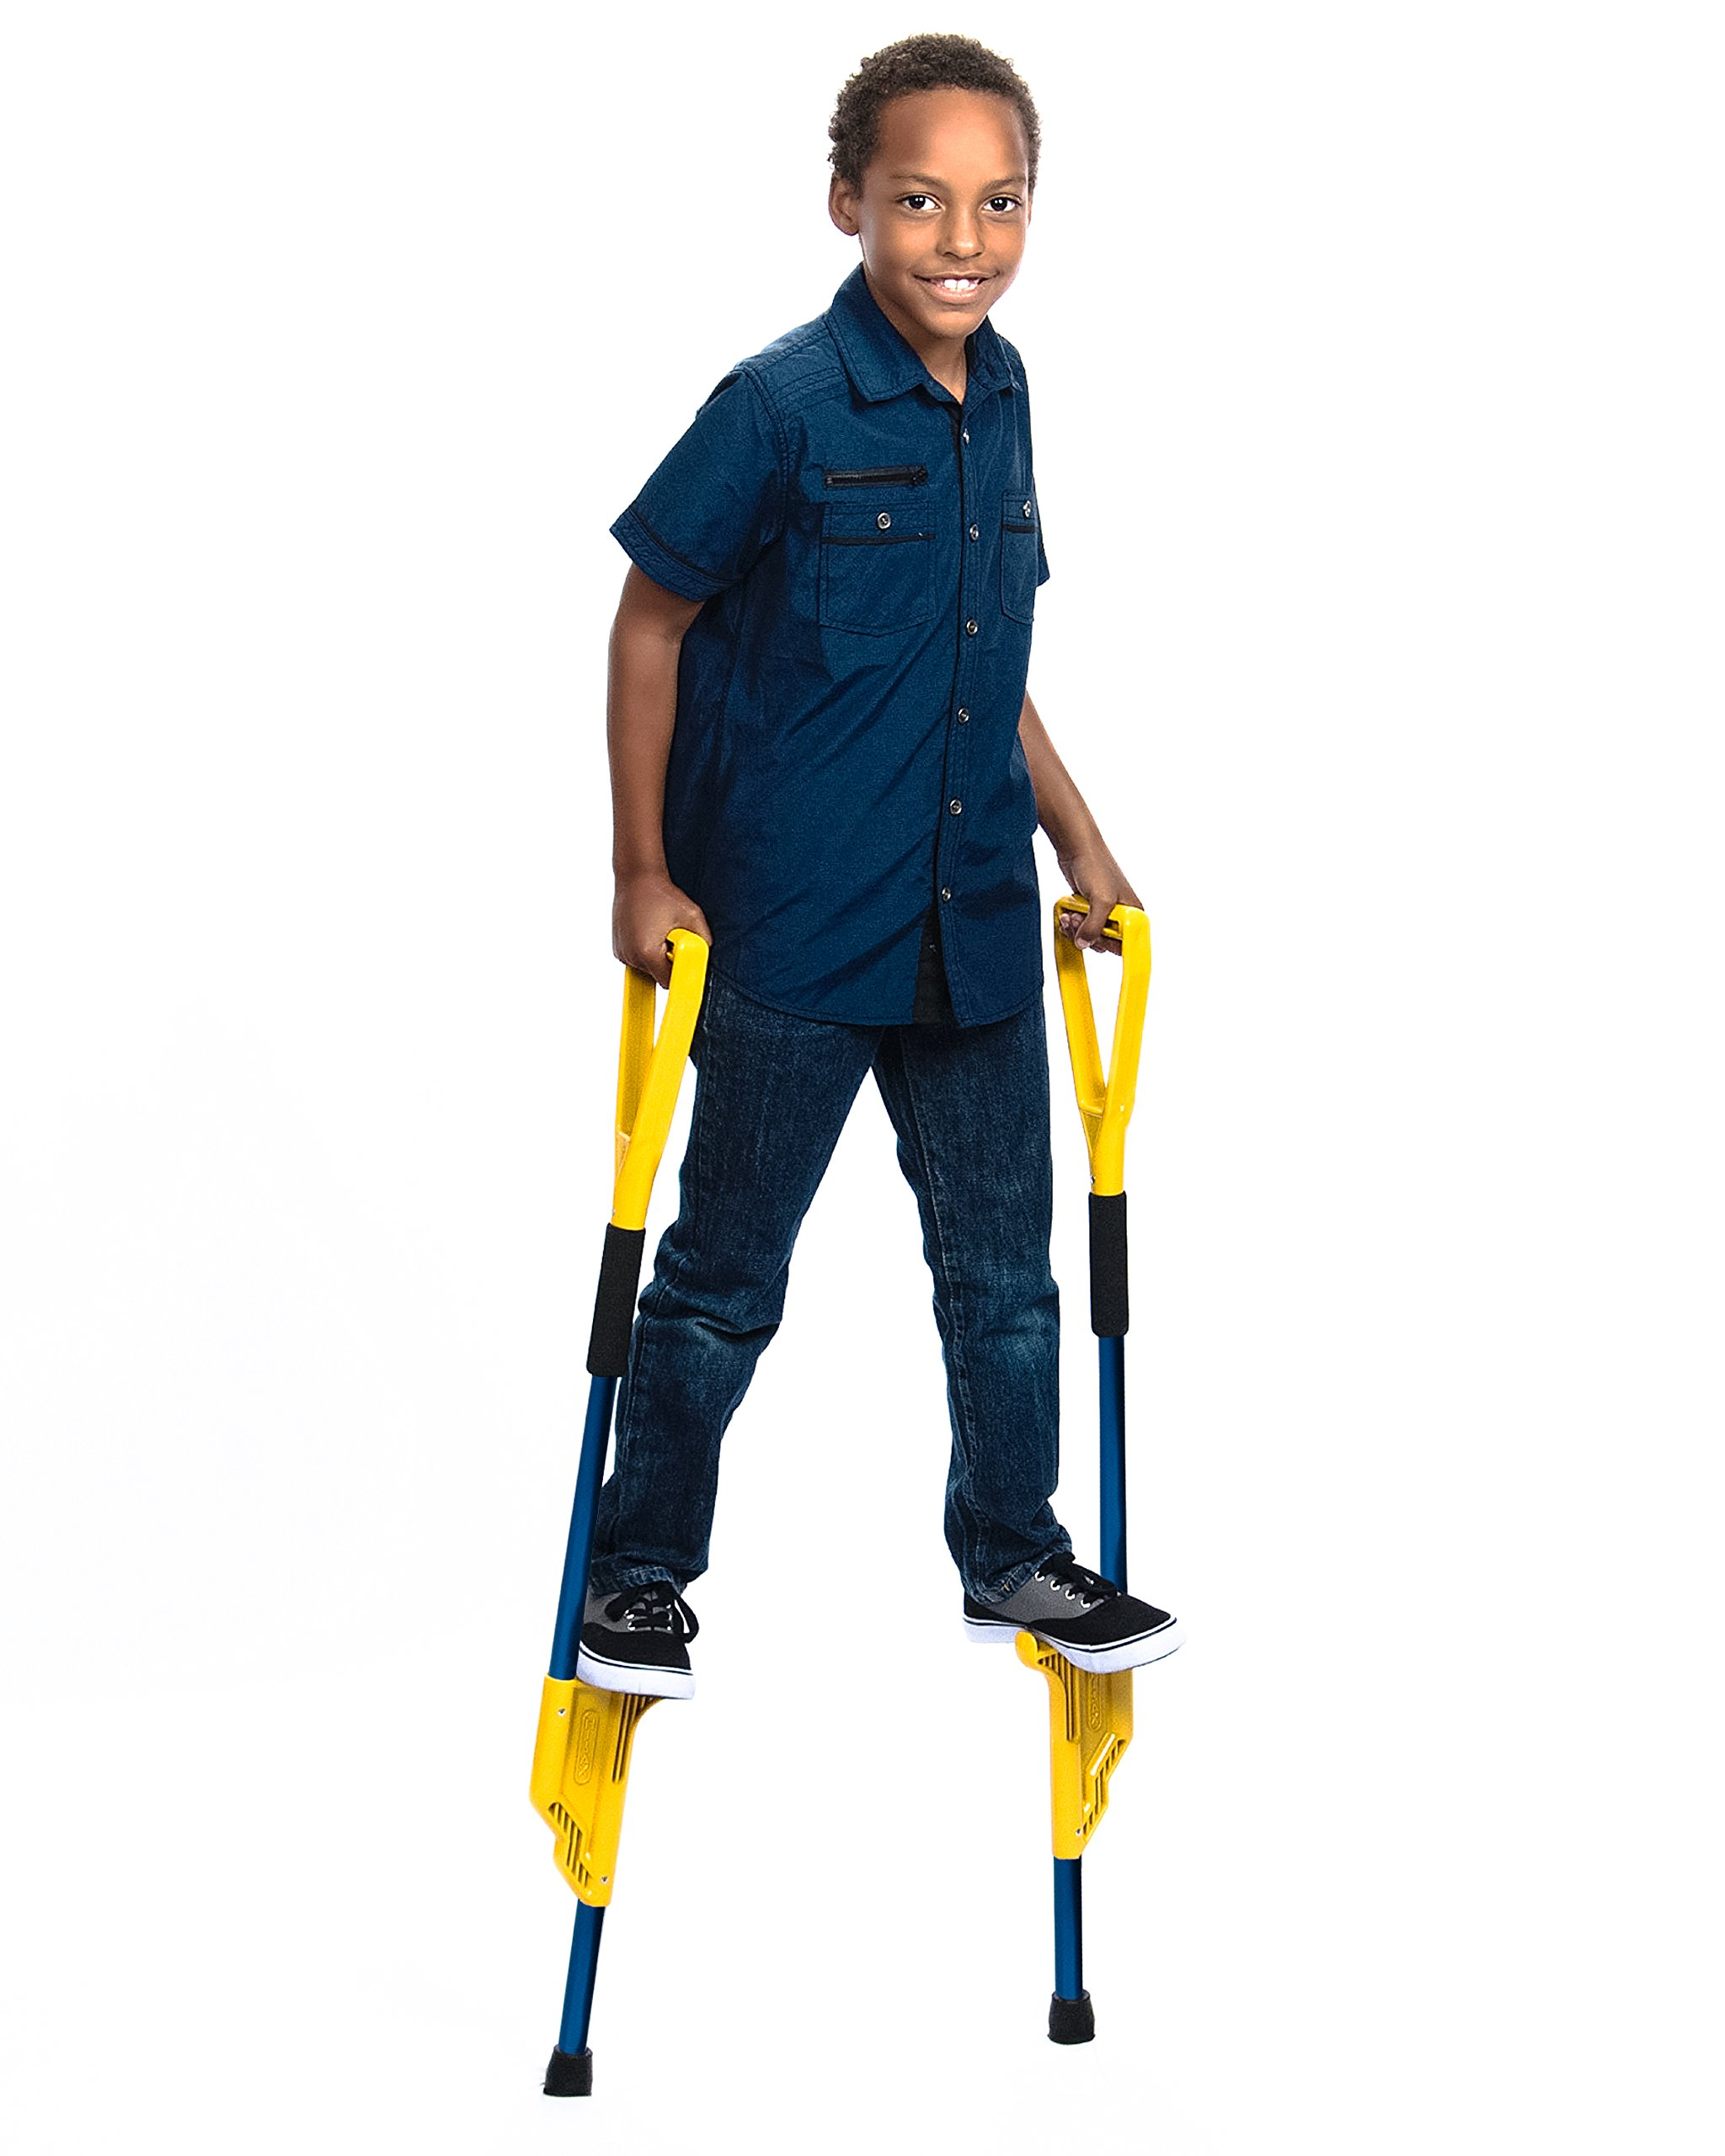 Hijax Standard Size Stilts for Active Kids (Made-In-America) by Extex